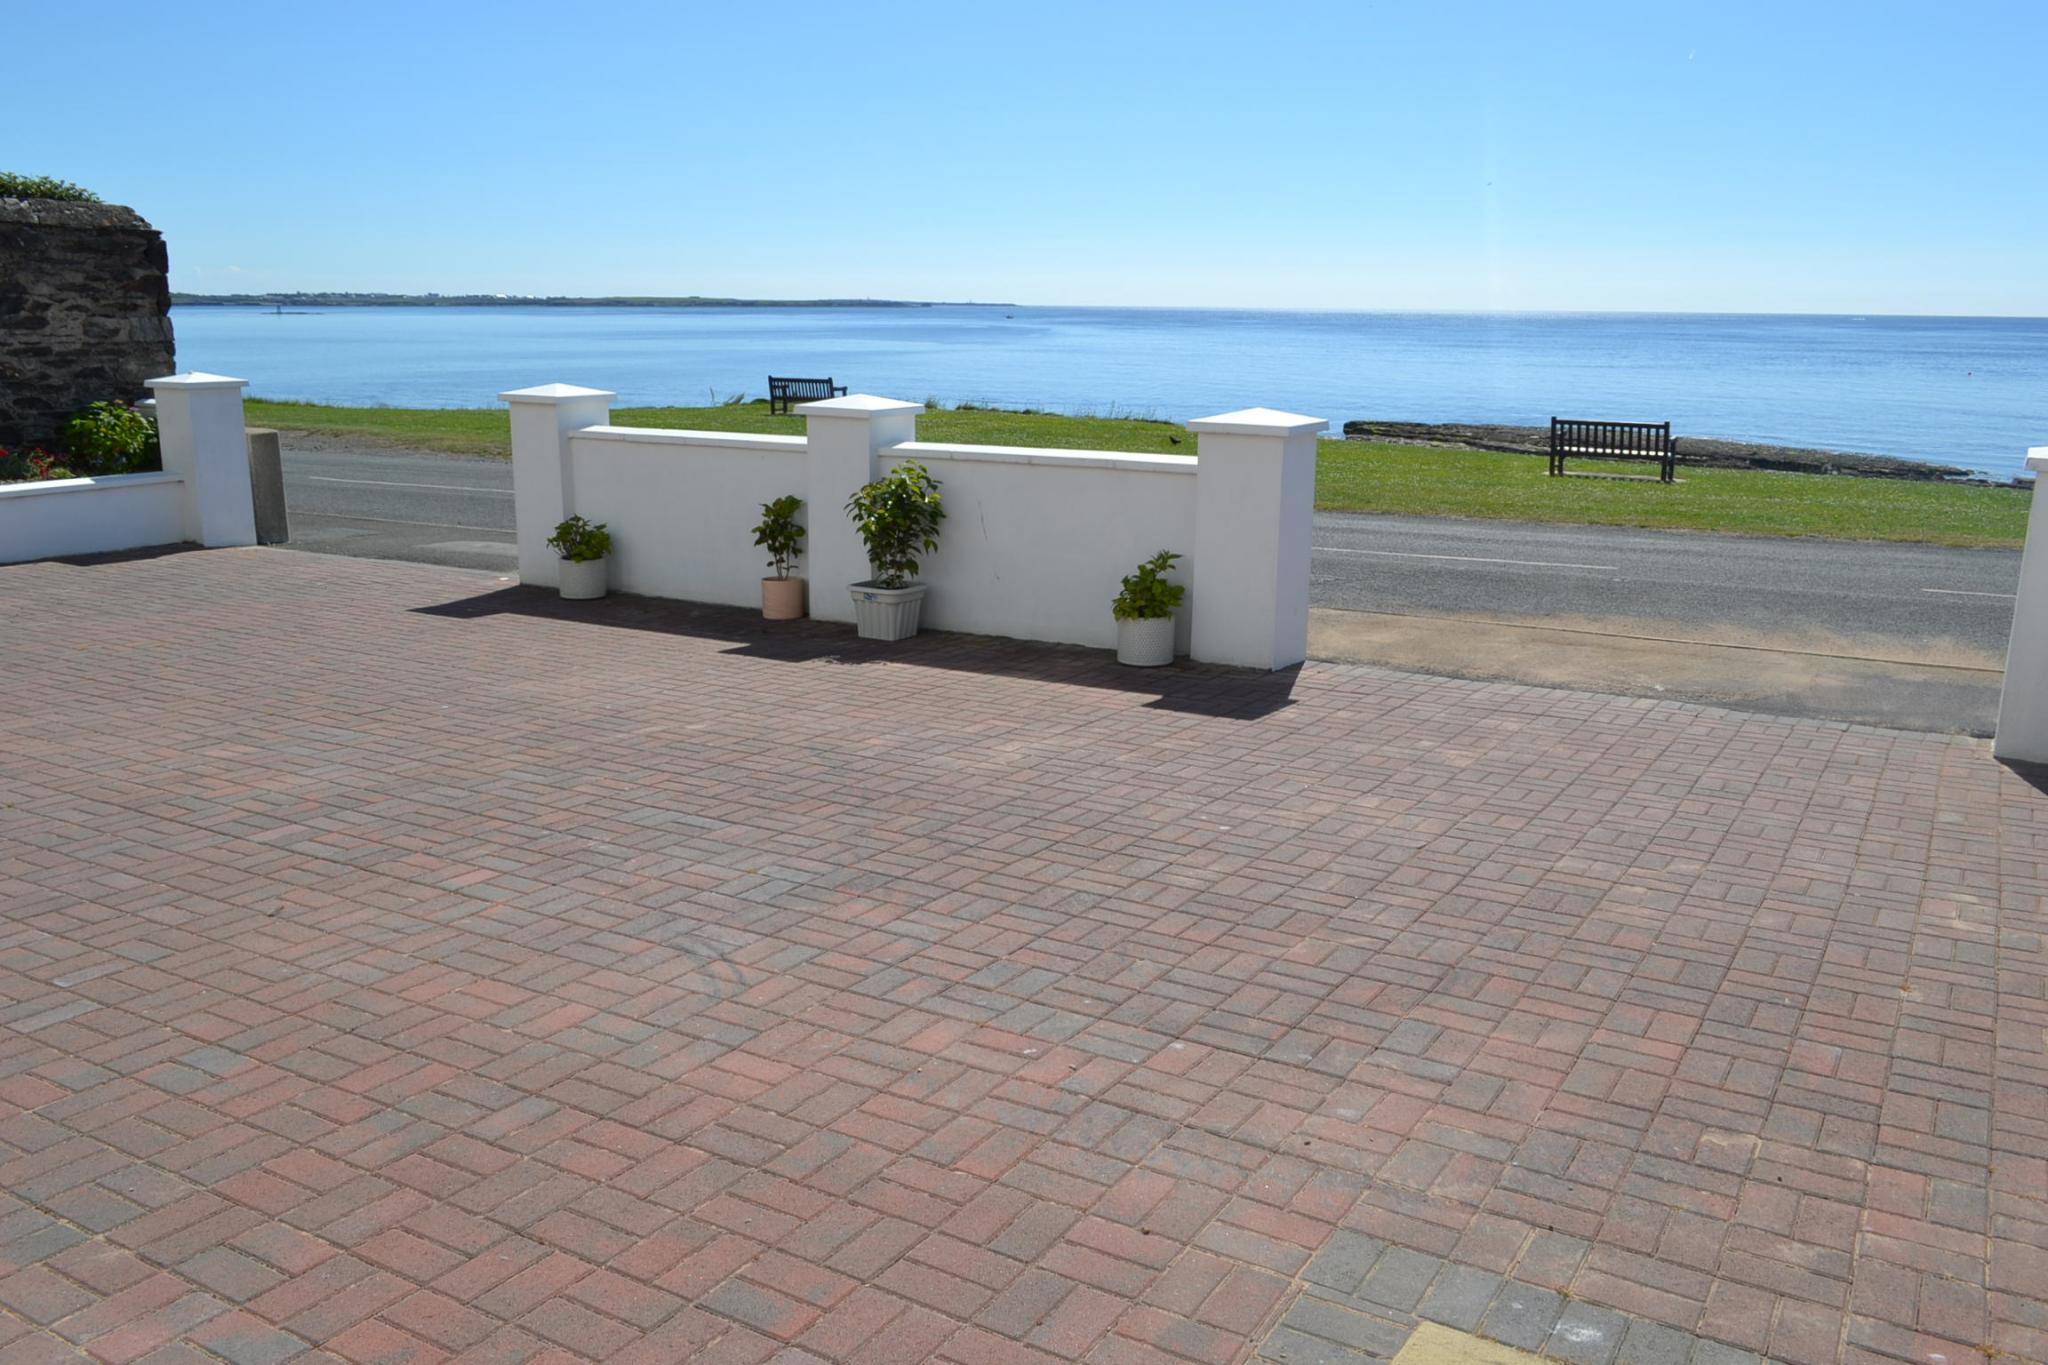 5 bedroom detached house For Sale in Port St Mary - Photograph 4